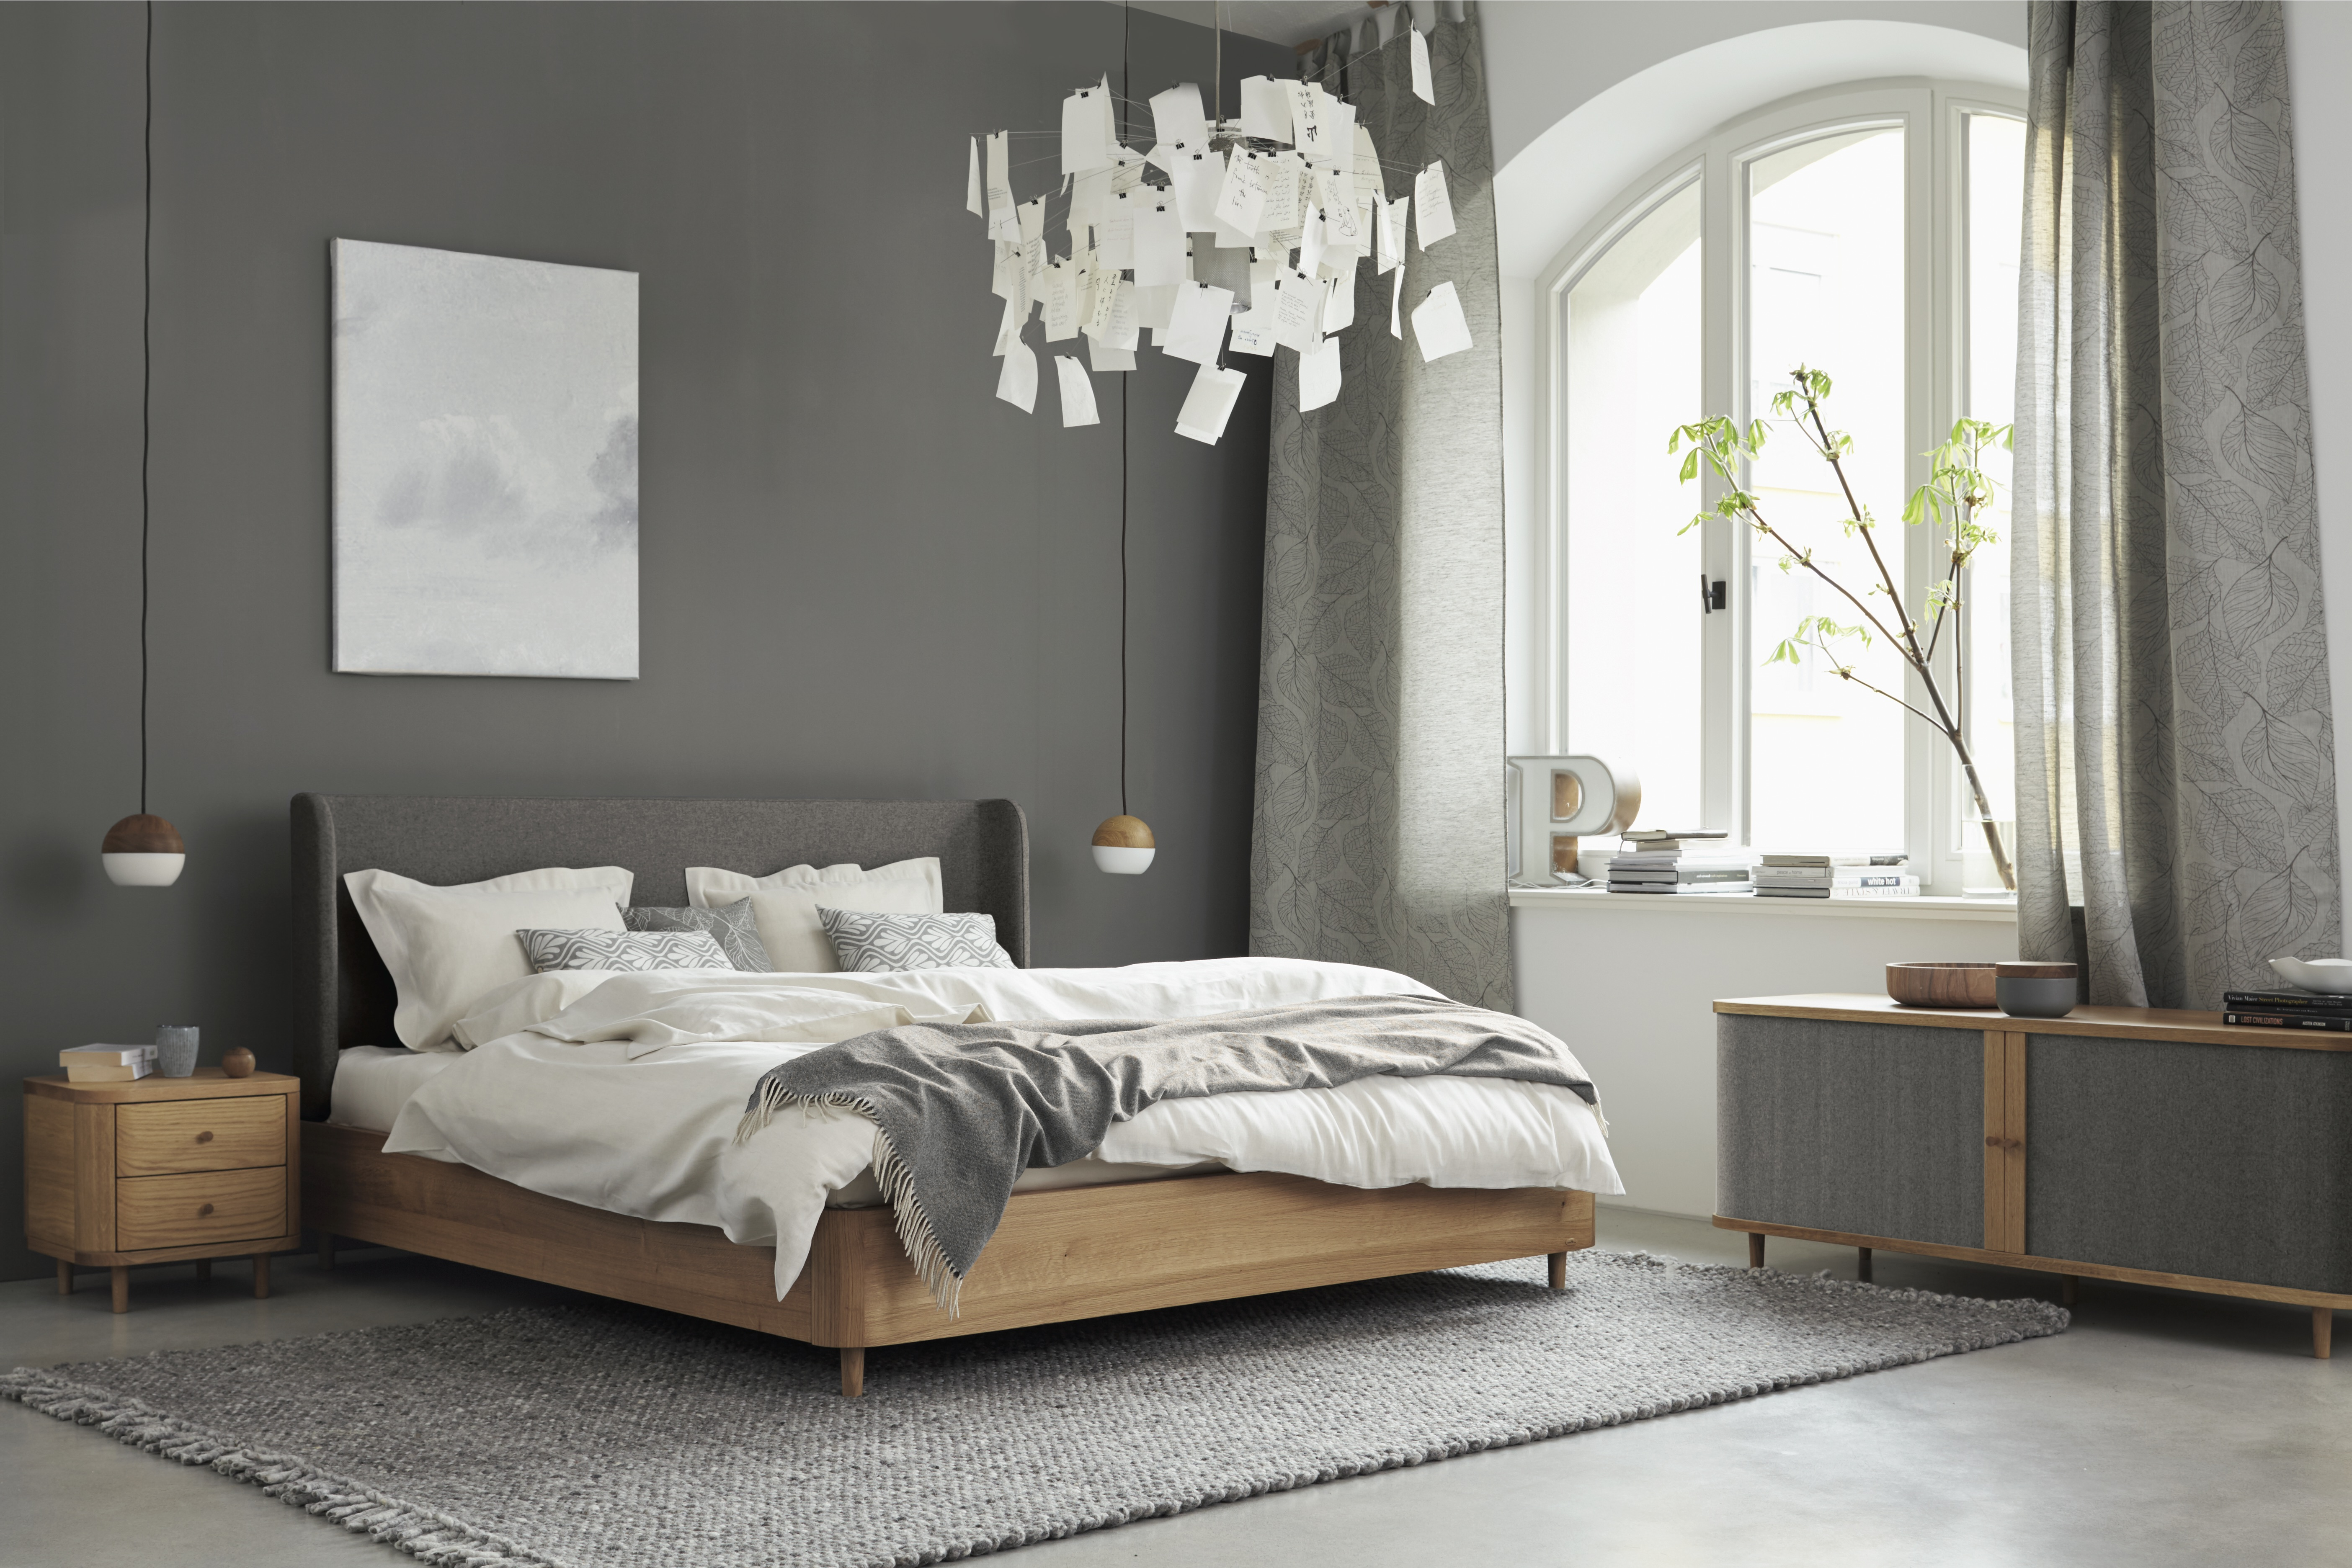 neues farbkonzept die farben der natur gr ne erde presse. Black Bedroom Furniture Sets. Home Design Ideas